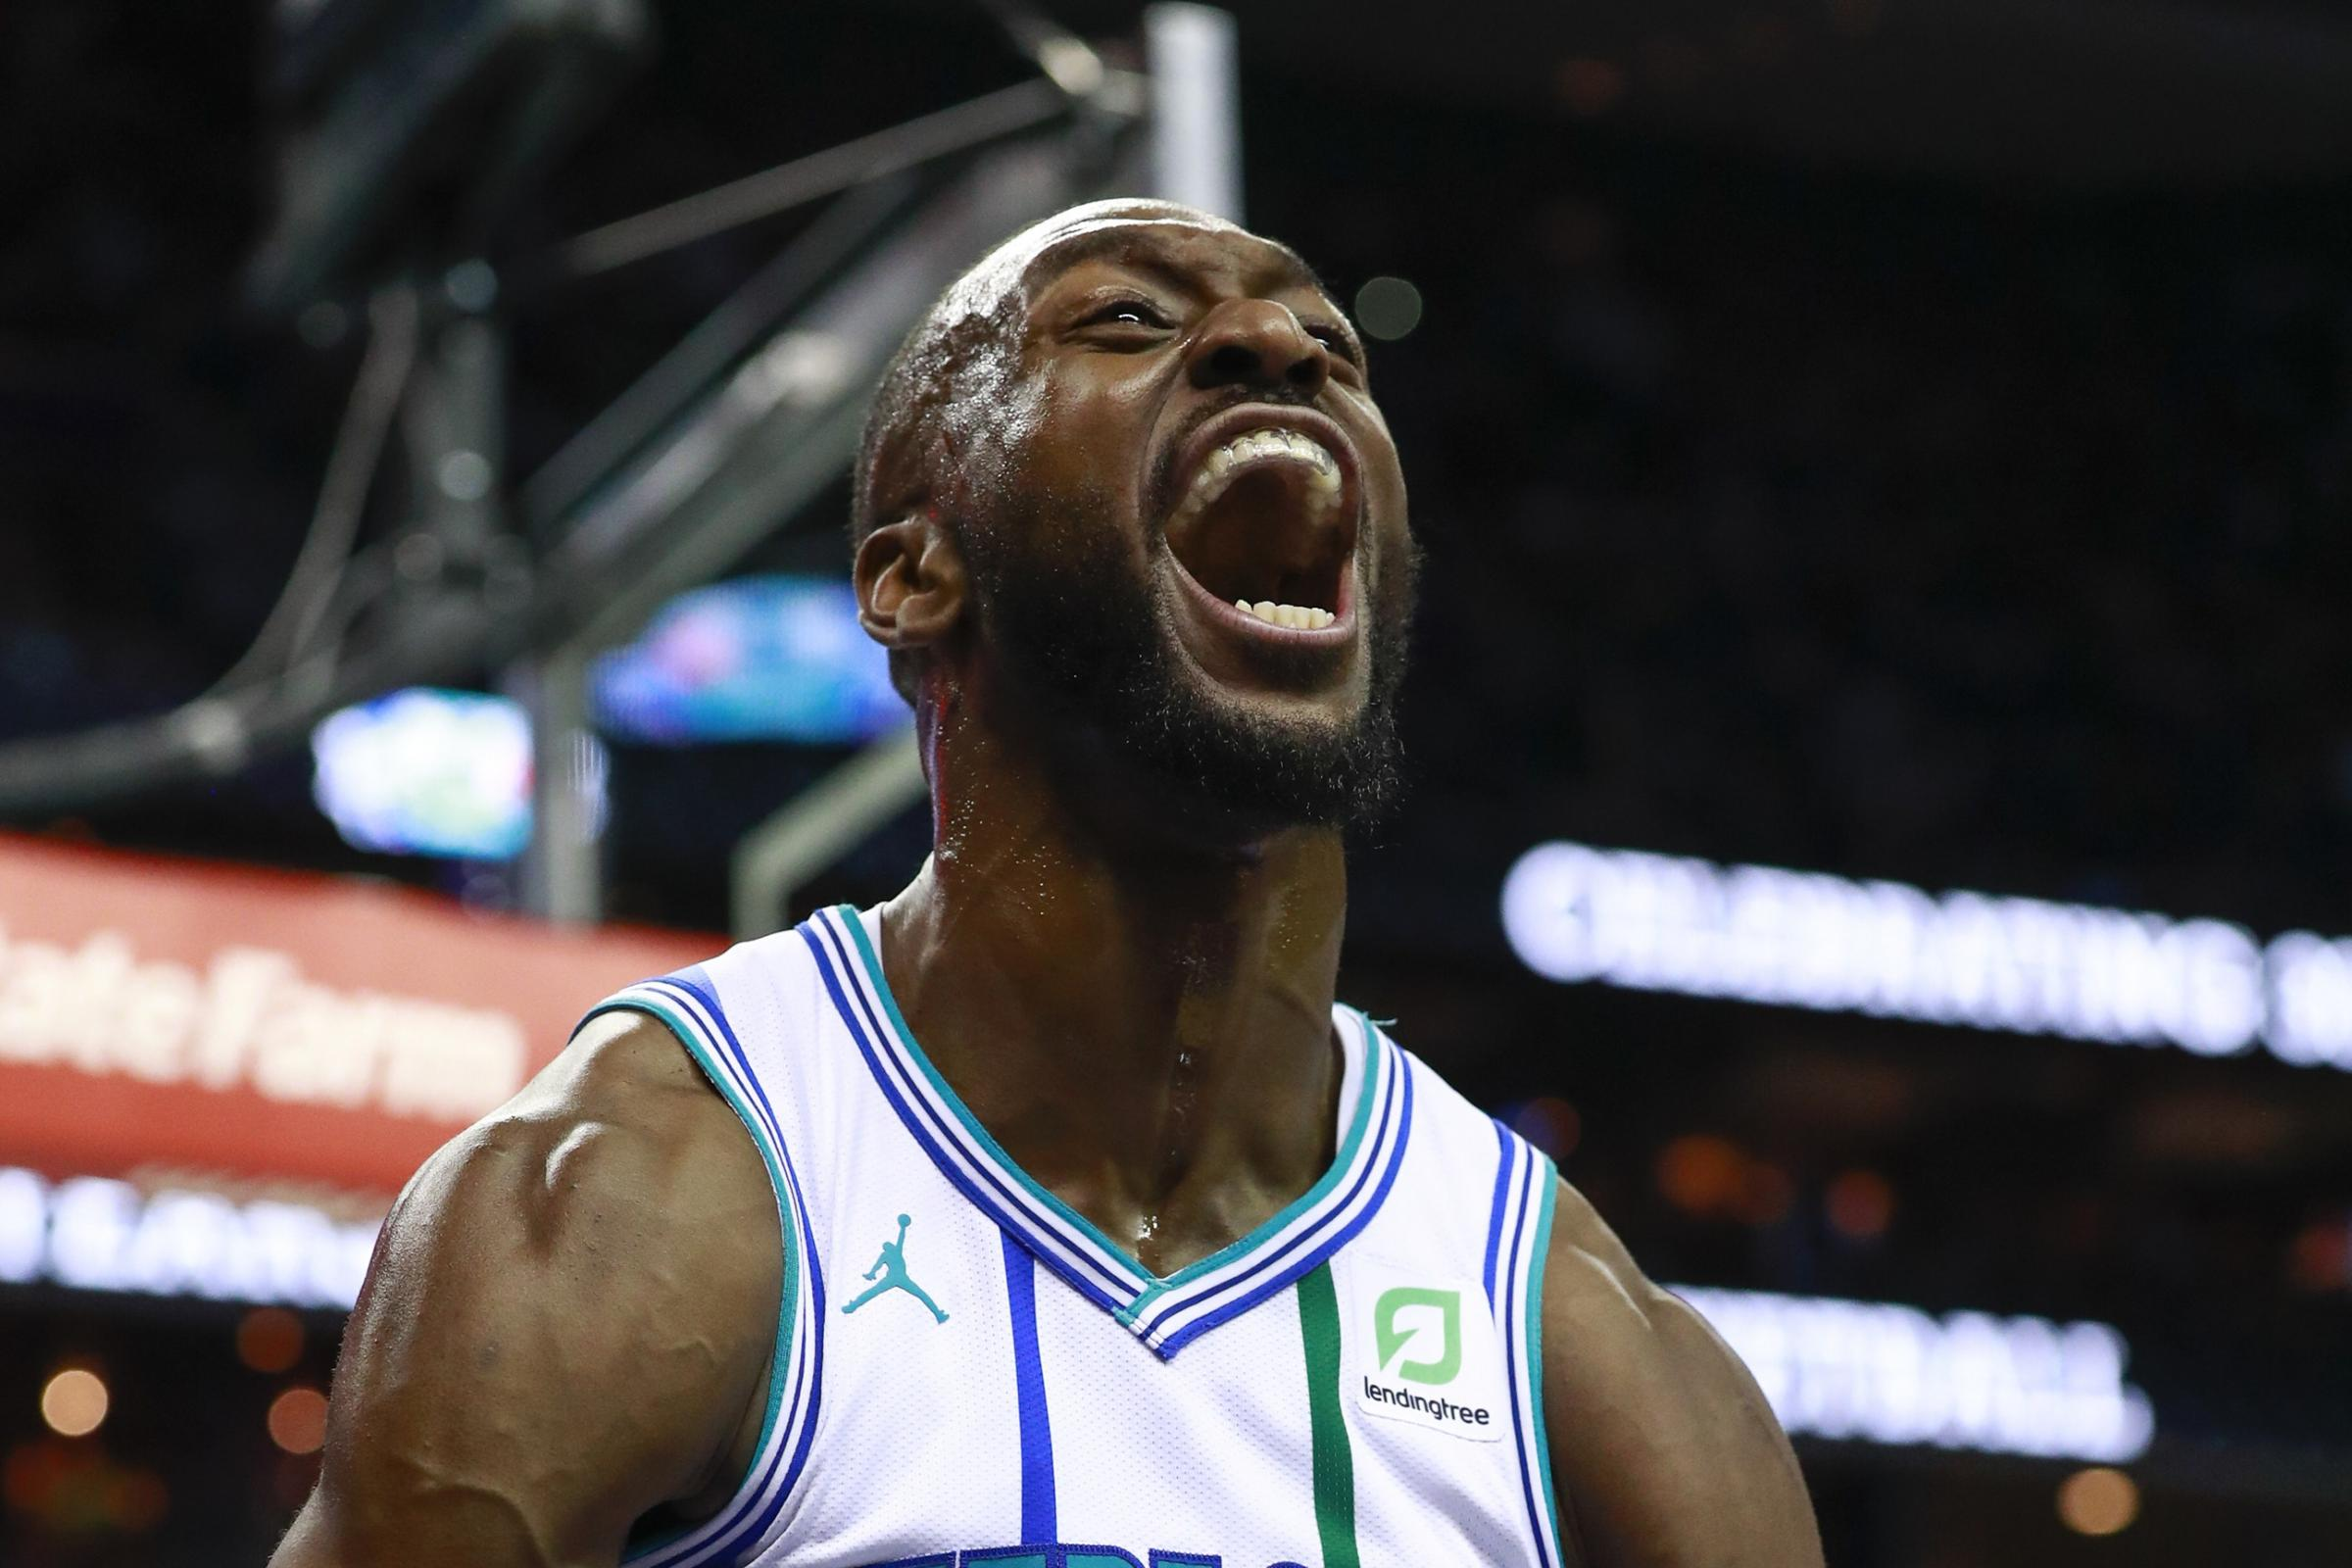 Charlotte Hornets guard Kemba Walker reacts after scoring against the Celtics